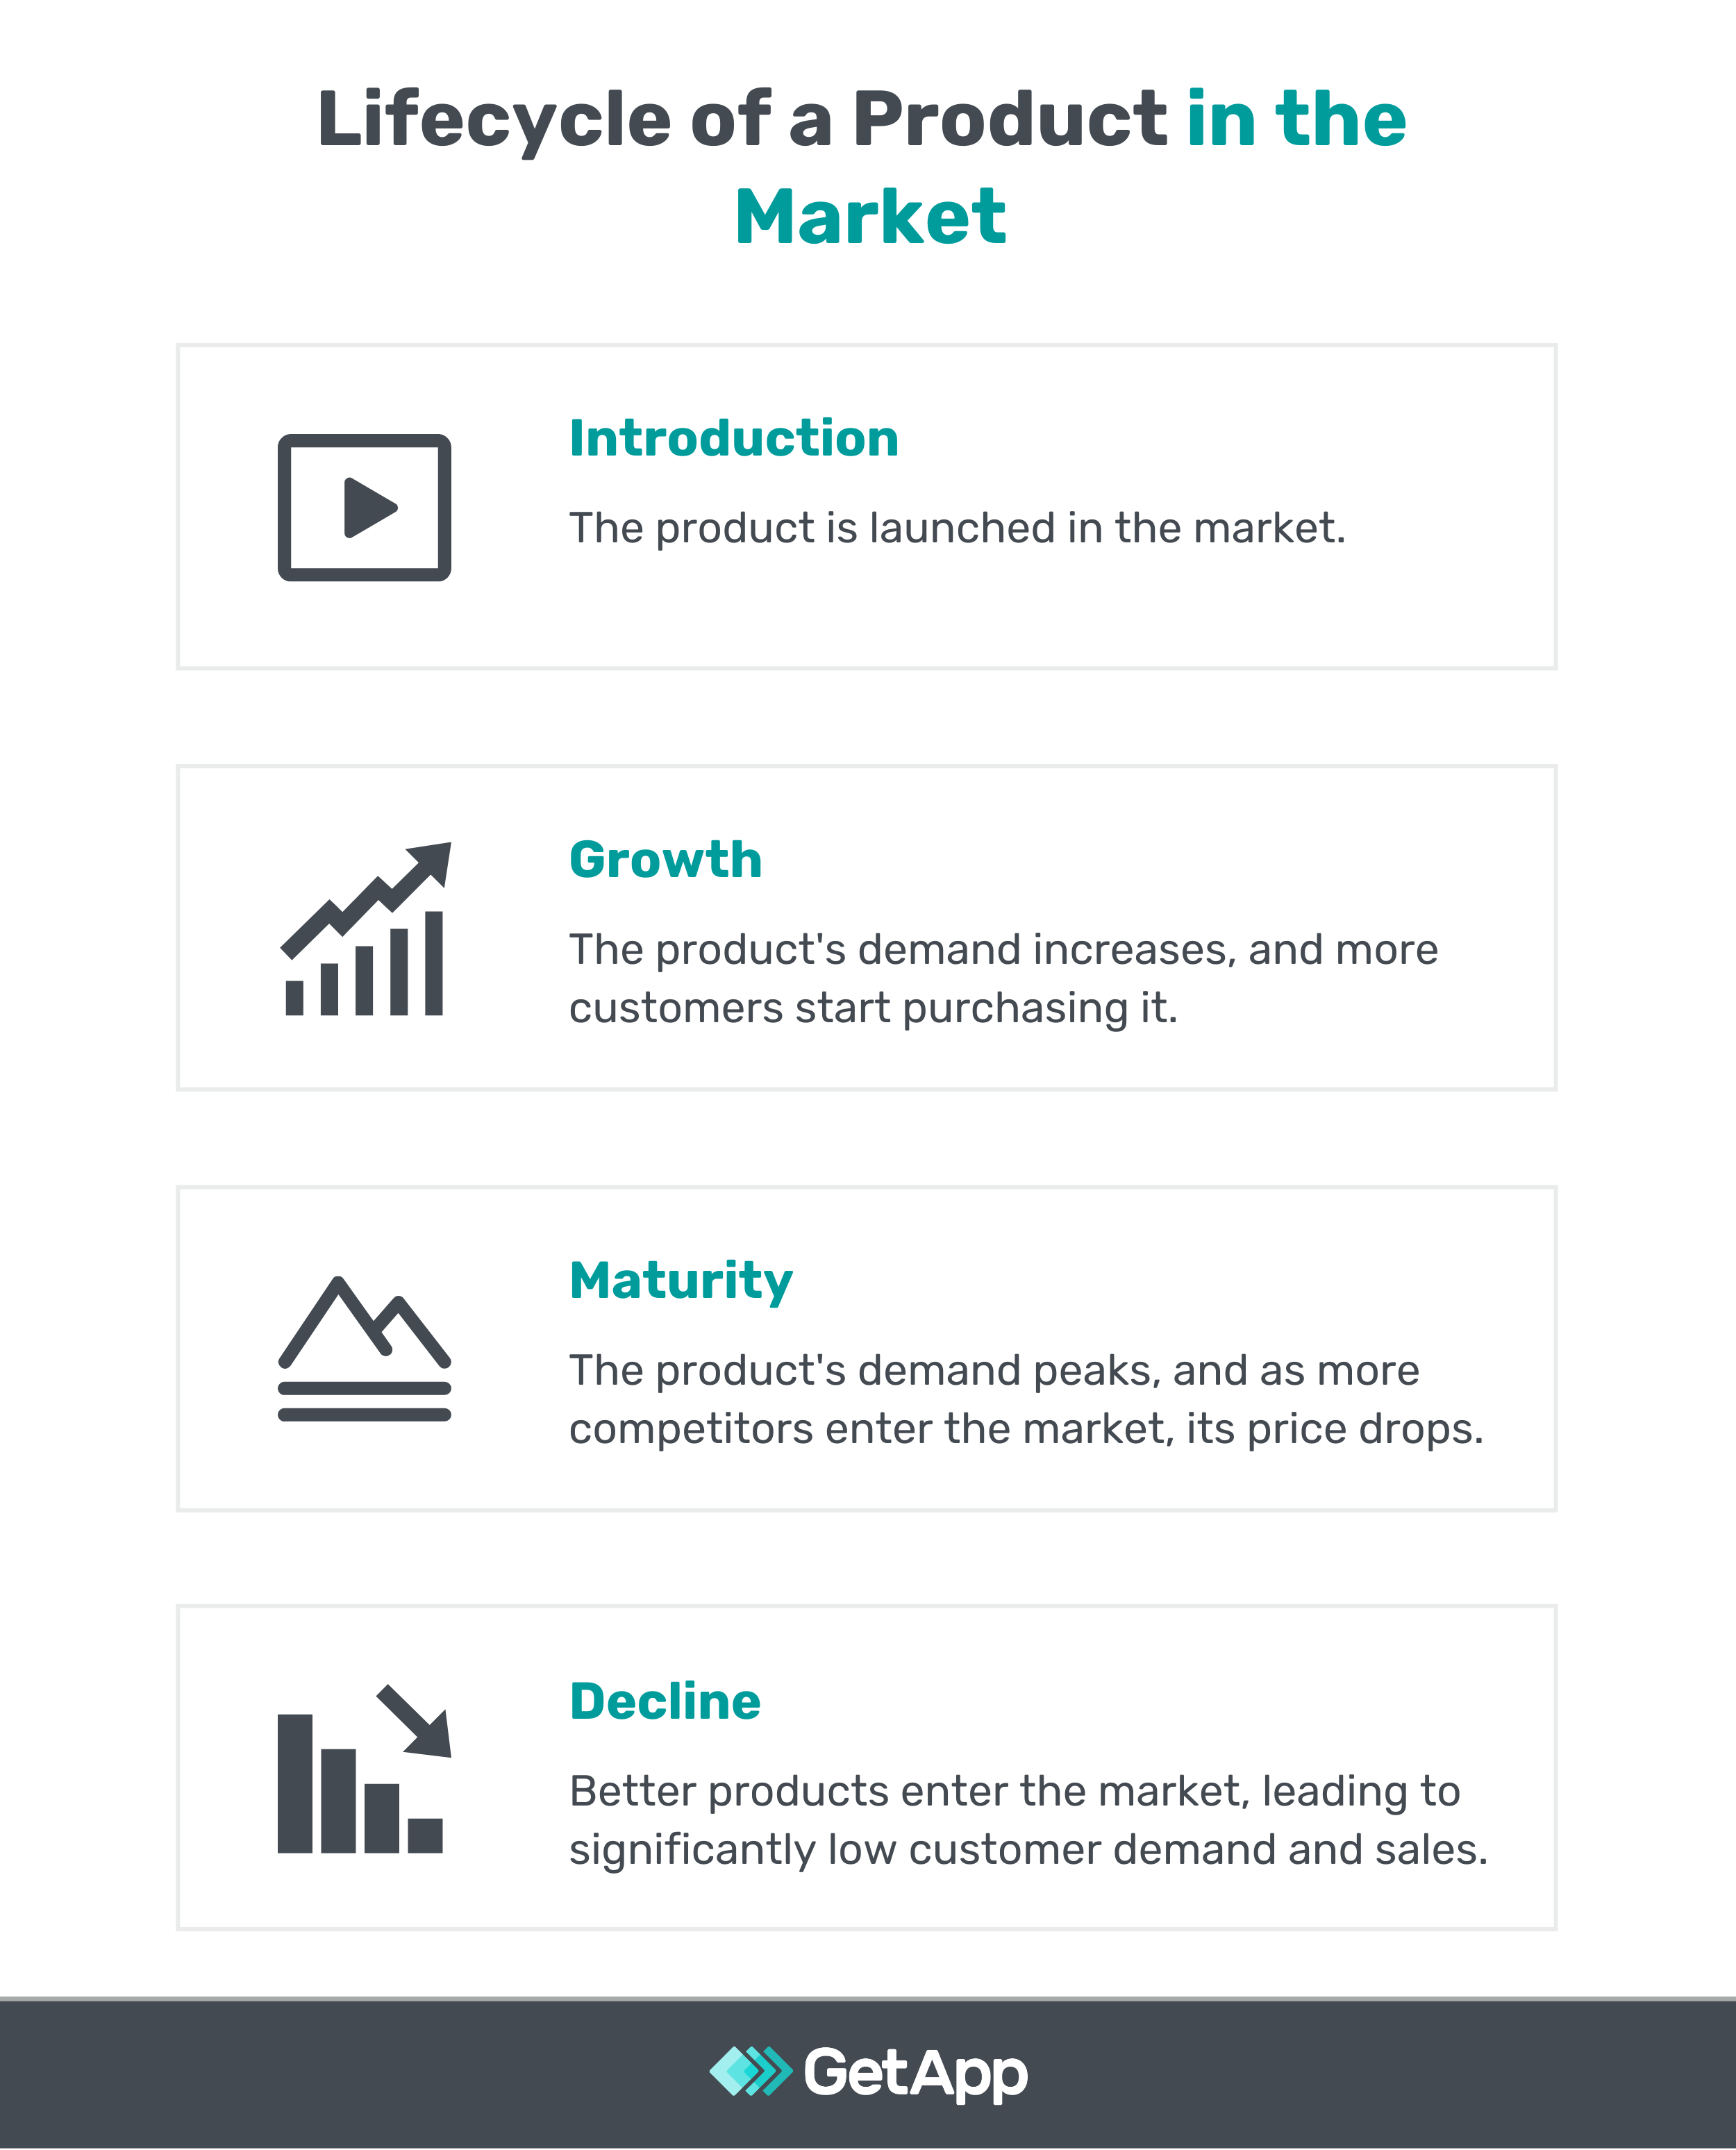 lifecycle of every product in the market